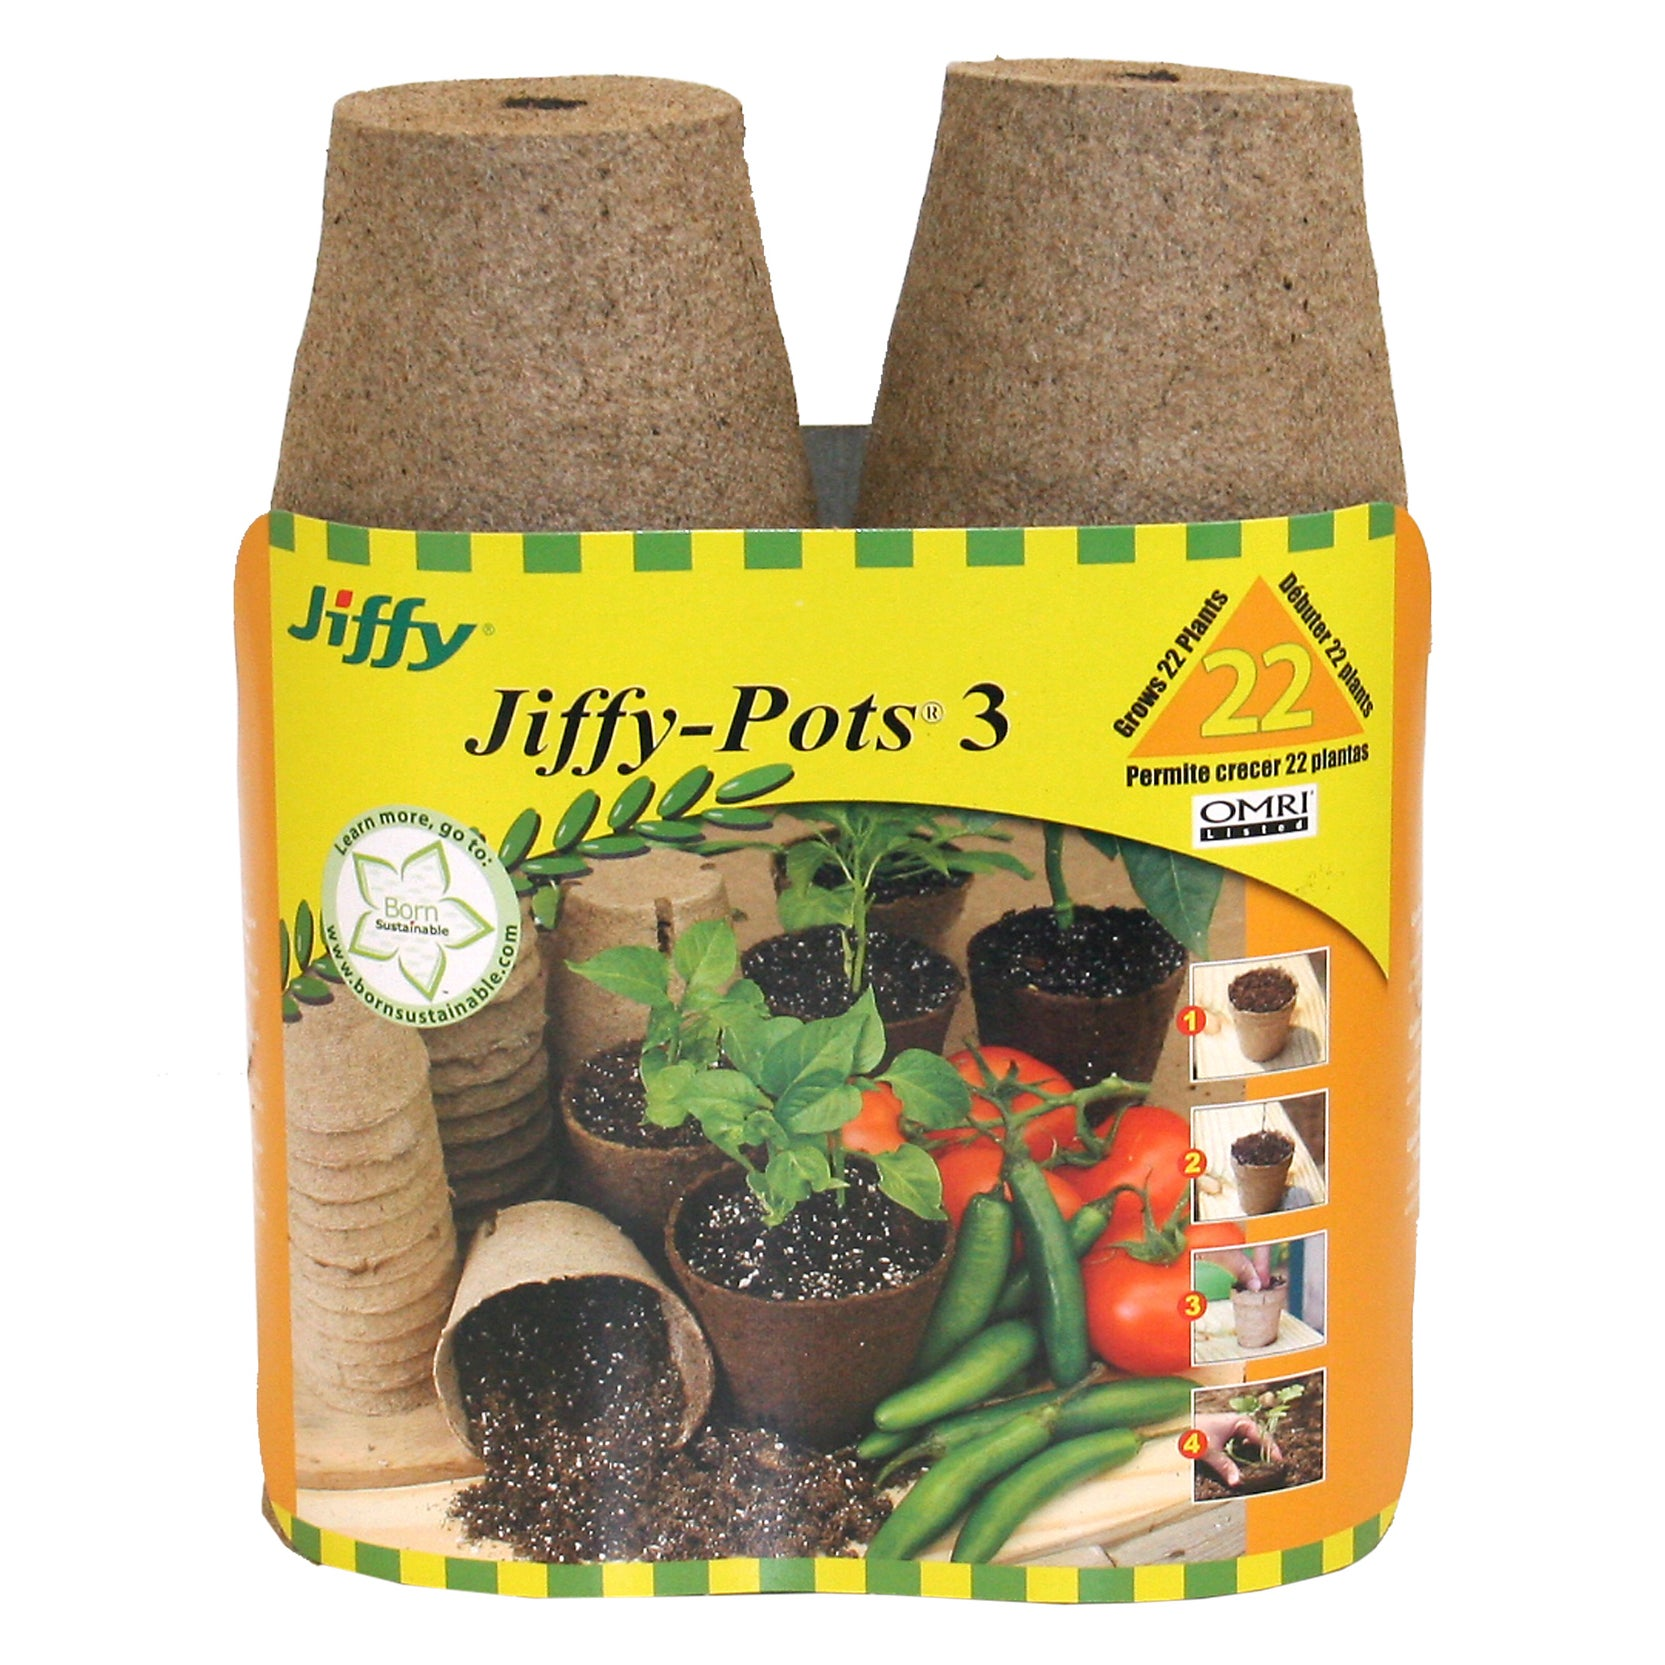 Jiffy JP322 22-count 3-inch Jiffy Pots (Plant Starters) (...